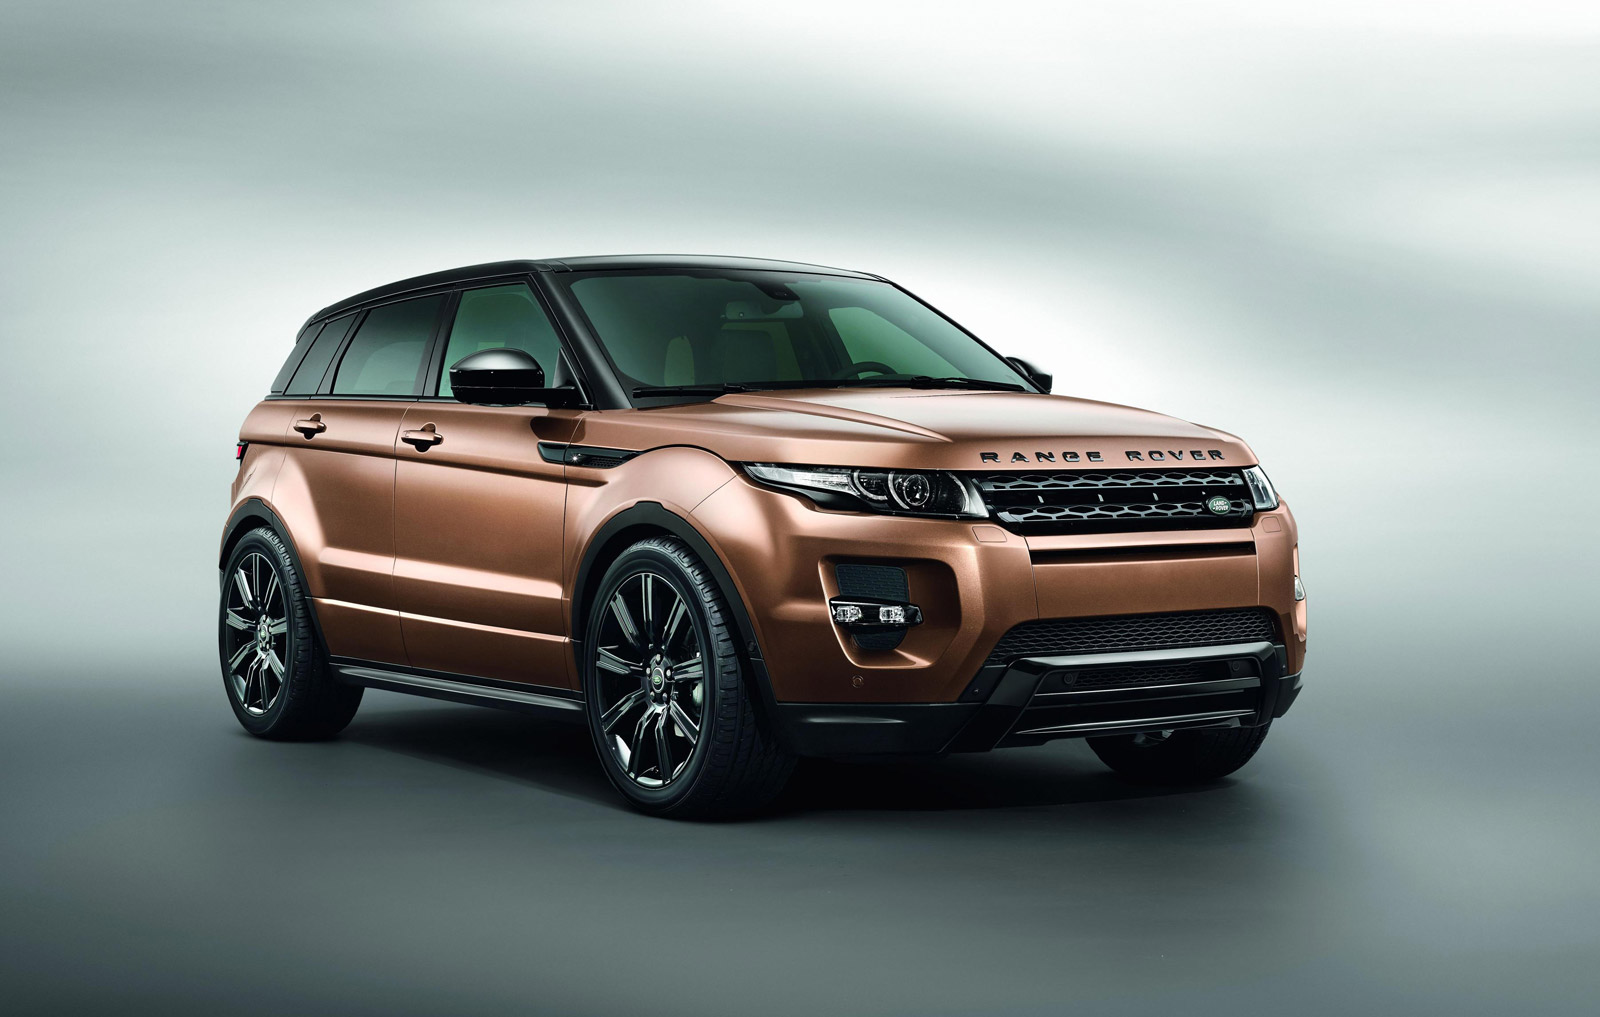 2014 land rover range rover evoque review ratings specs. Black Bedroom Furniture Sets. Home Design Ideas